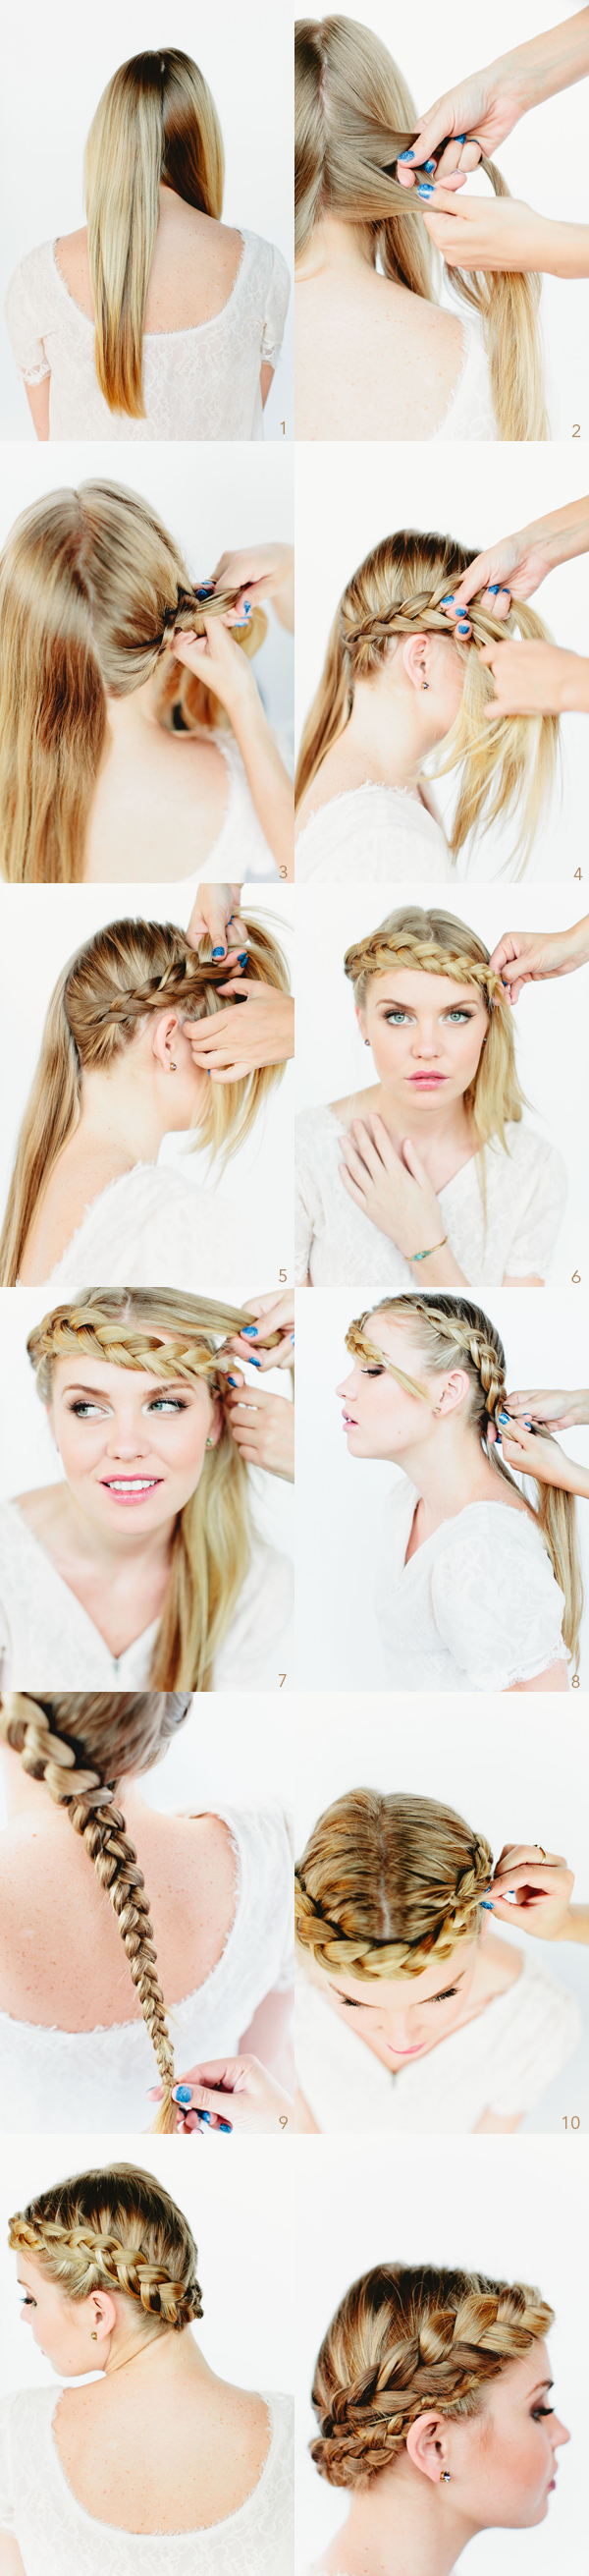 Gorgeous Braided Crown Hairstyle Tutorial